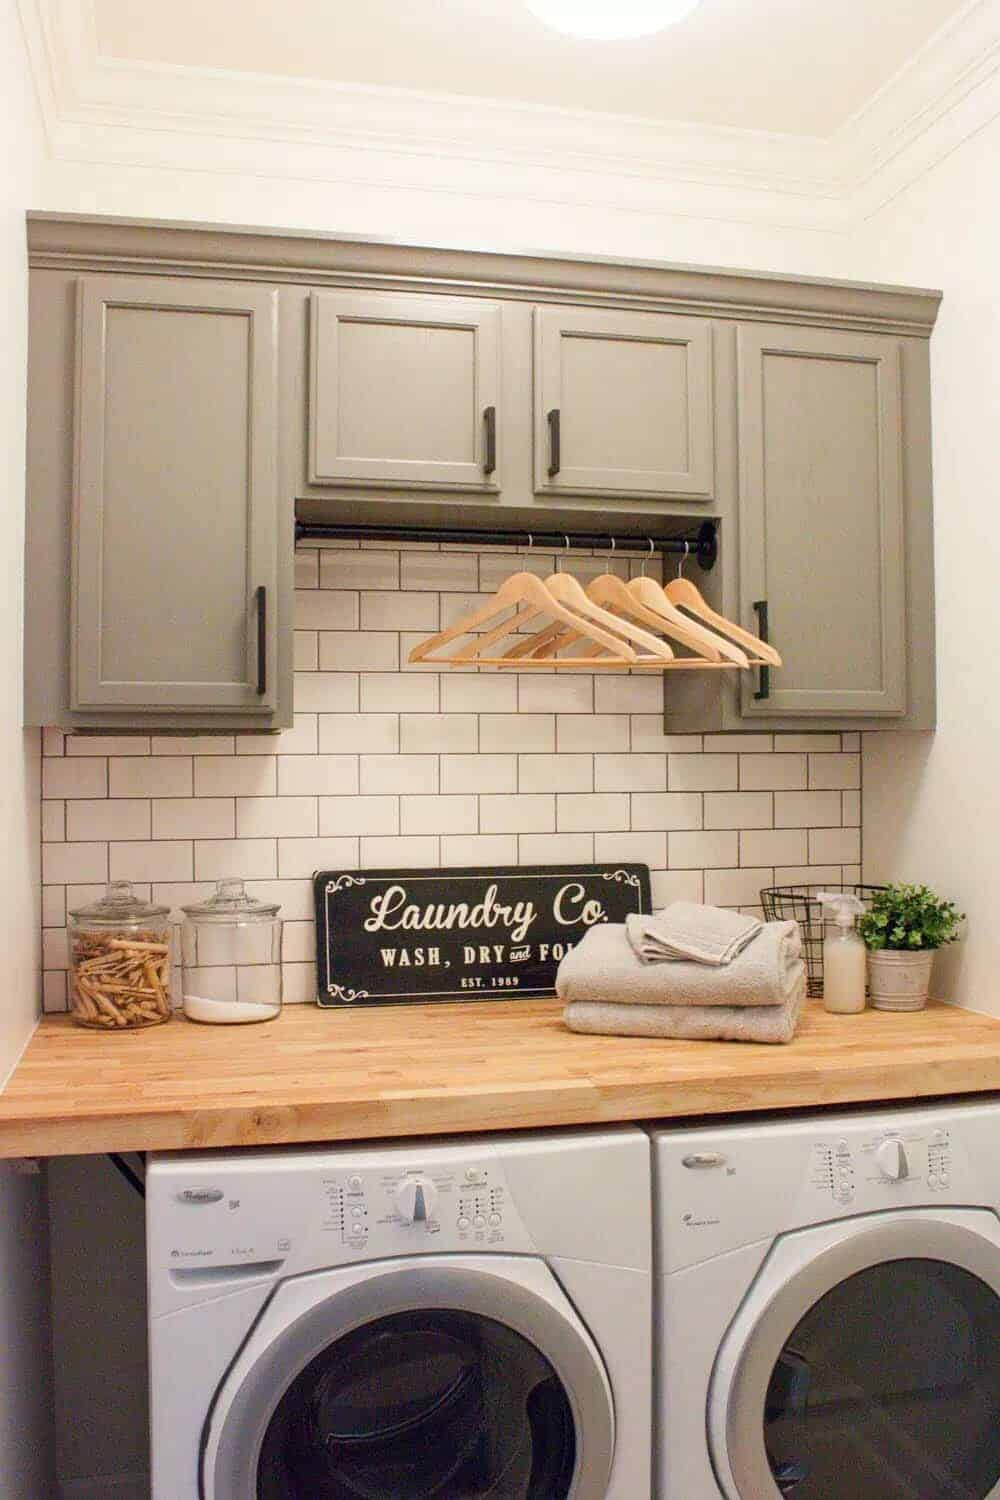 30+ Unbelievably inspiring farmhouse style laundry room ideas on Laundry Room Decor Ideas  id=54101